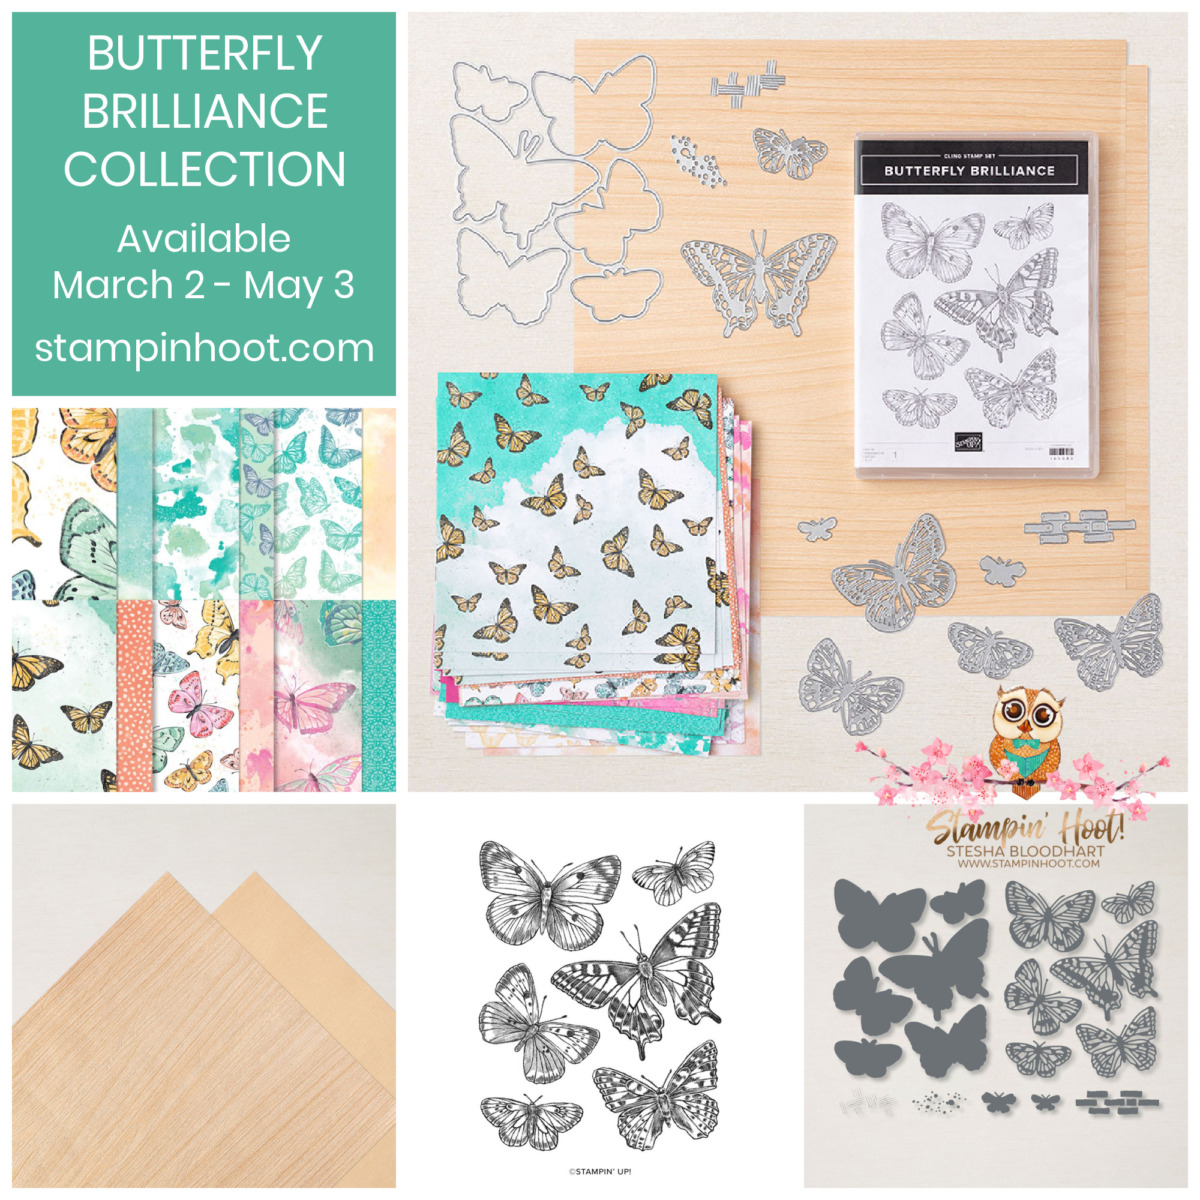 Butterfly Brilliance Collection 159408 $71.25 from Stampin' Up! Purchase from Stesha Bloodhart, Stampin' Hoot!